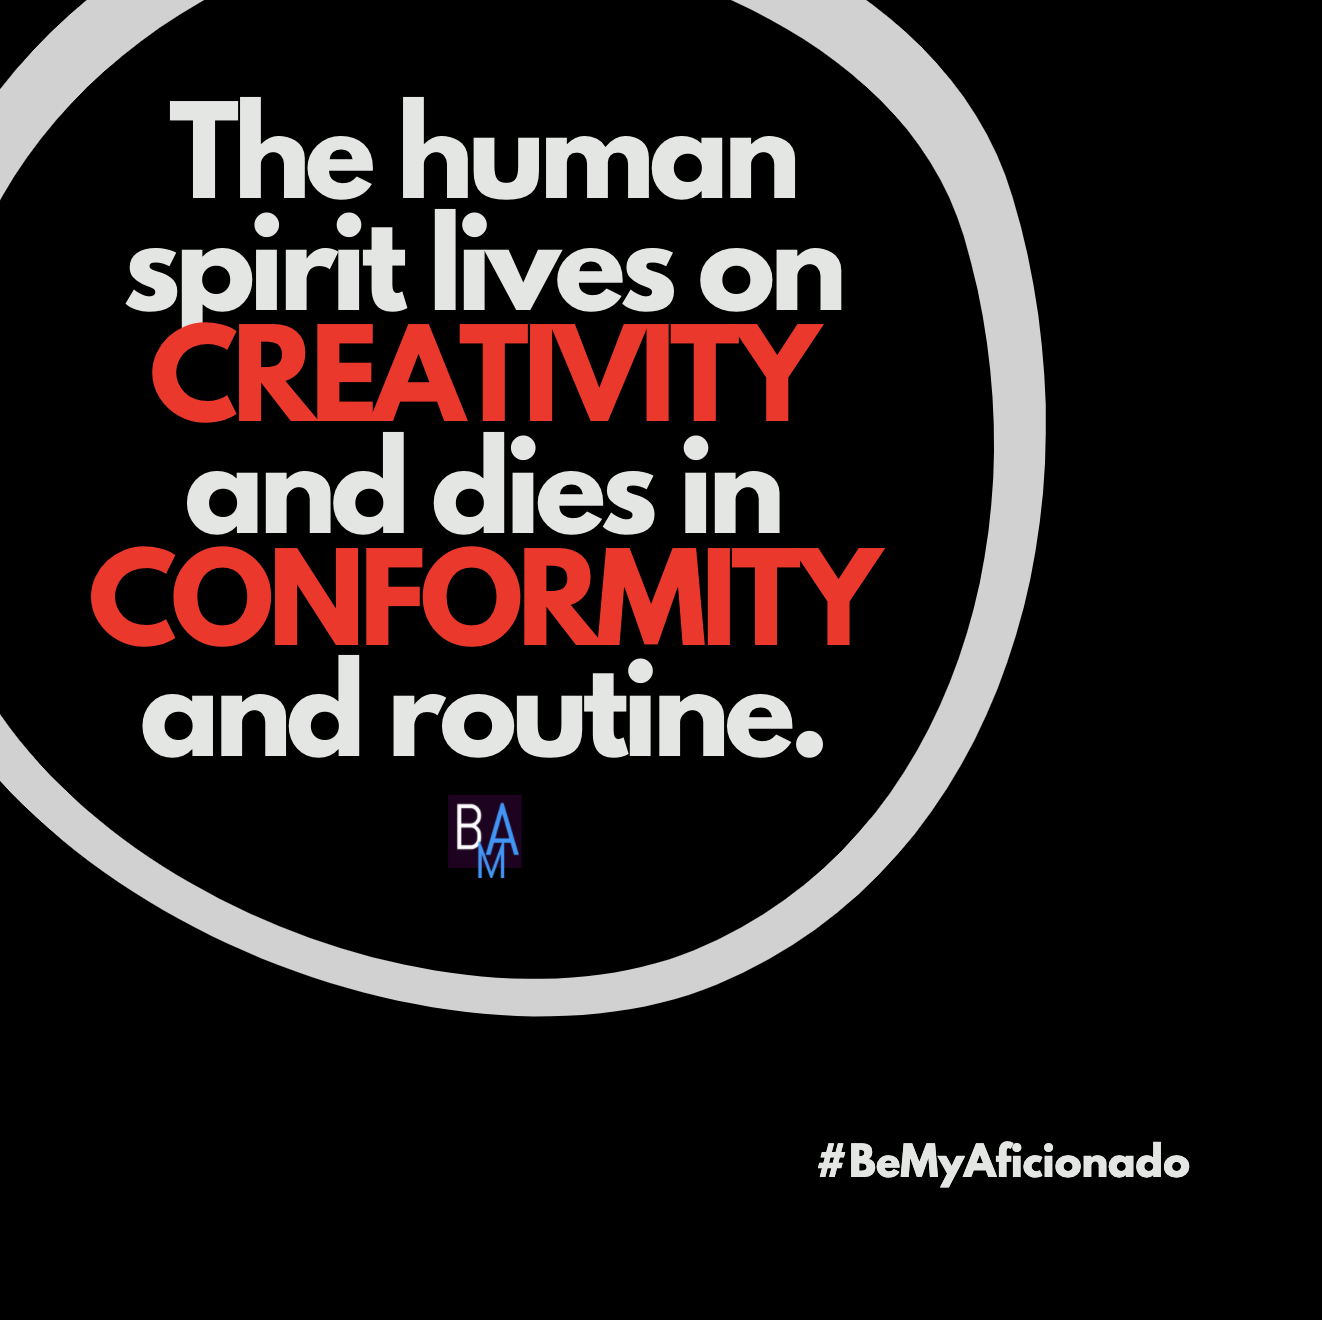 The human spirit lives on creativity and dies in conformity and routine.